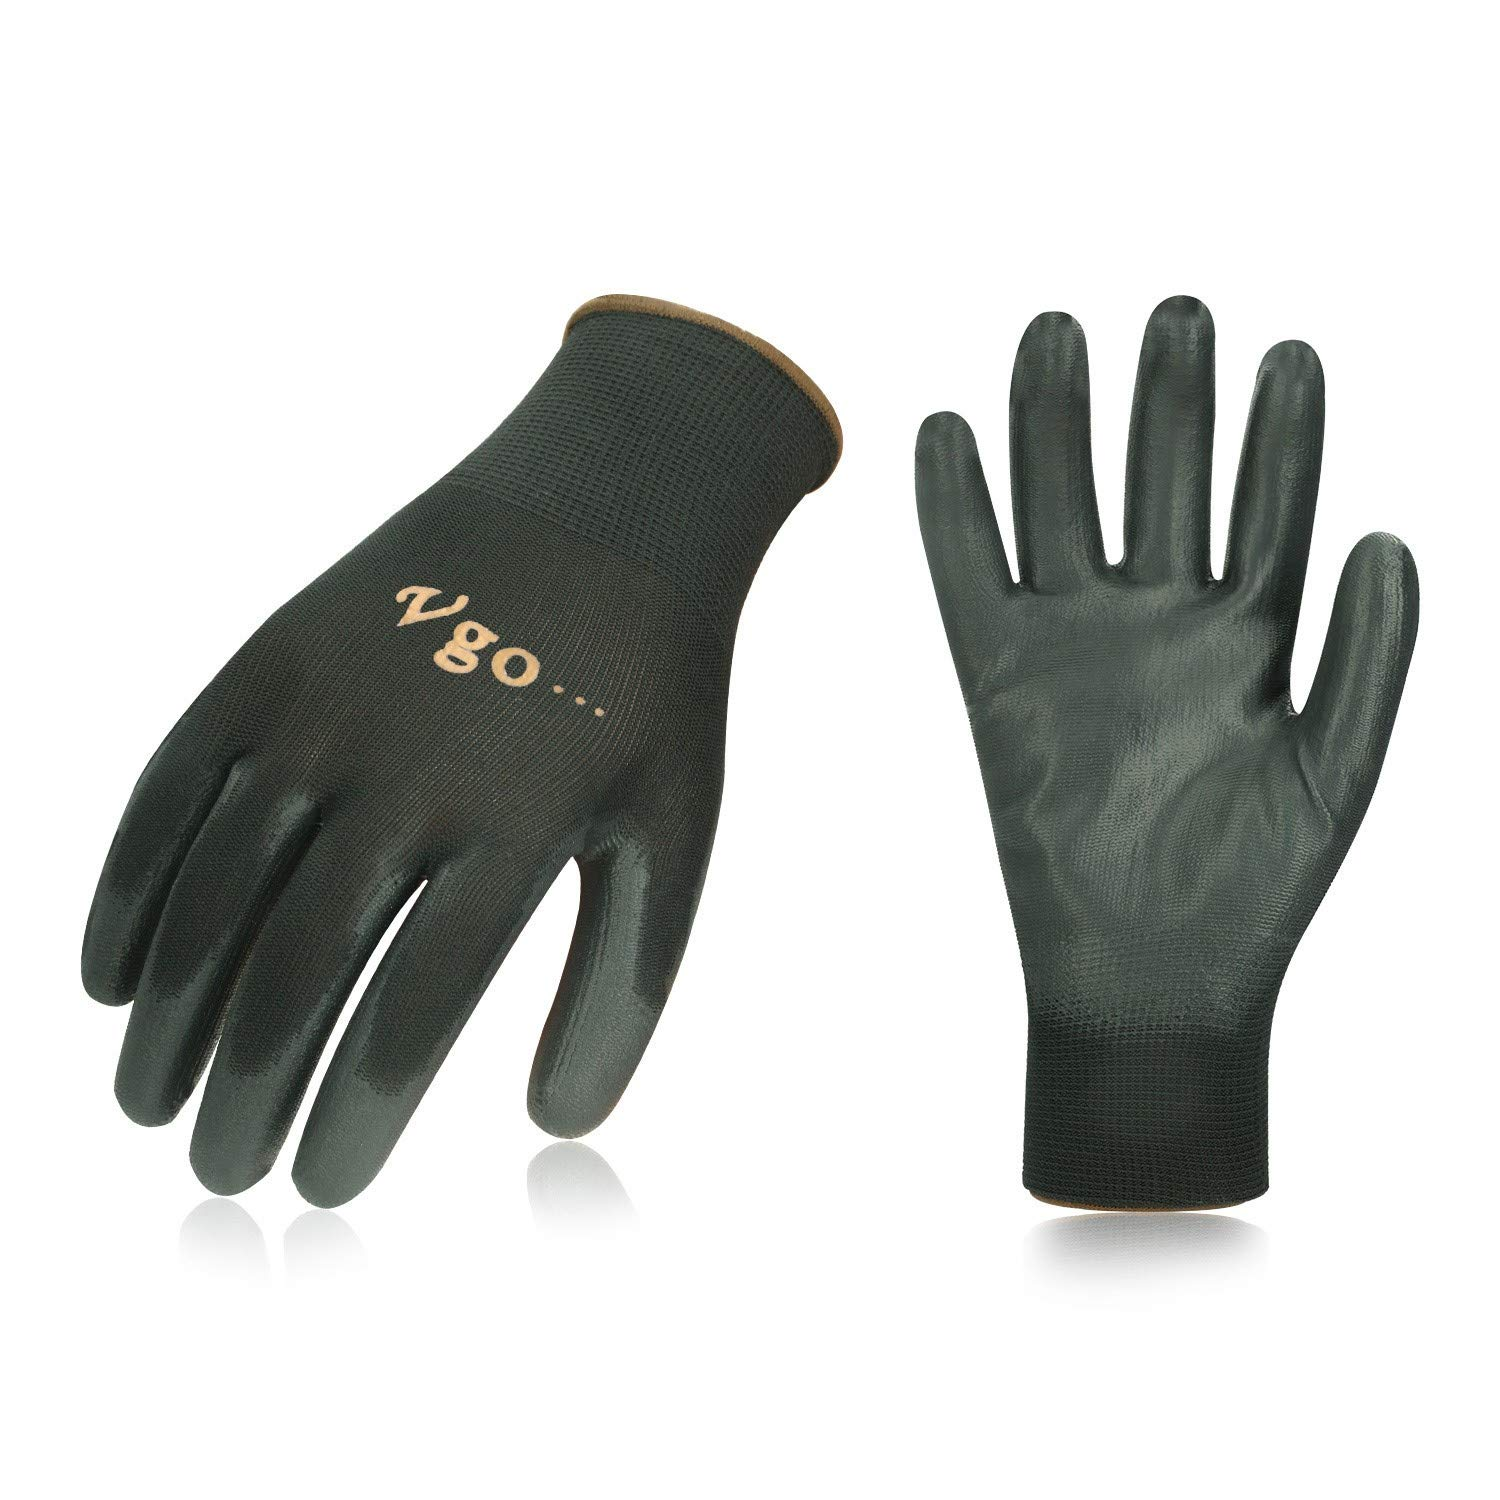 Vgo… PU Coated Gardening and Work Gloves (15 Pairs, Black Color, Size 9/L and 10/XL)